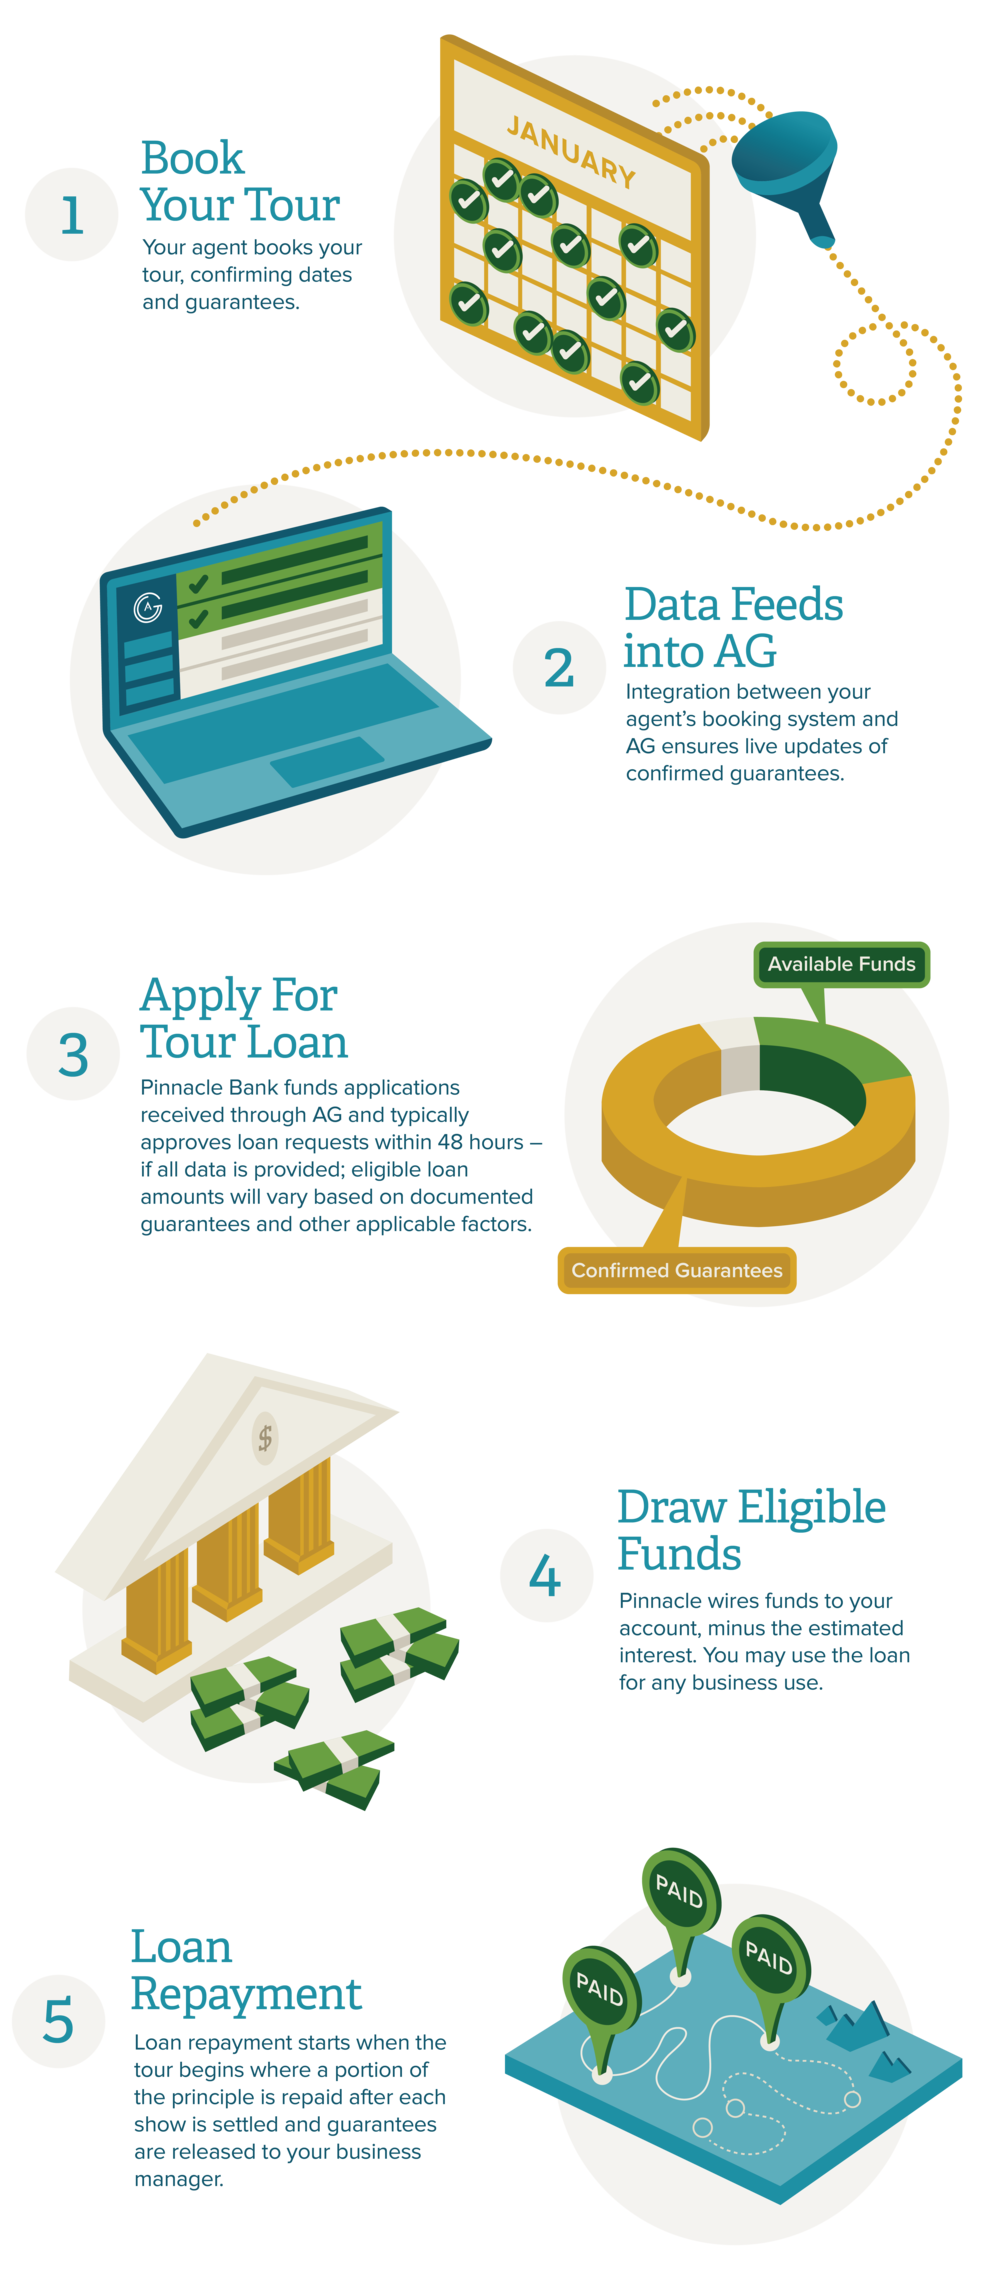 AG-Finance-Infographic_FINAL-mobile.png